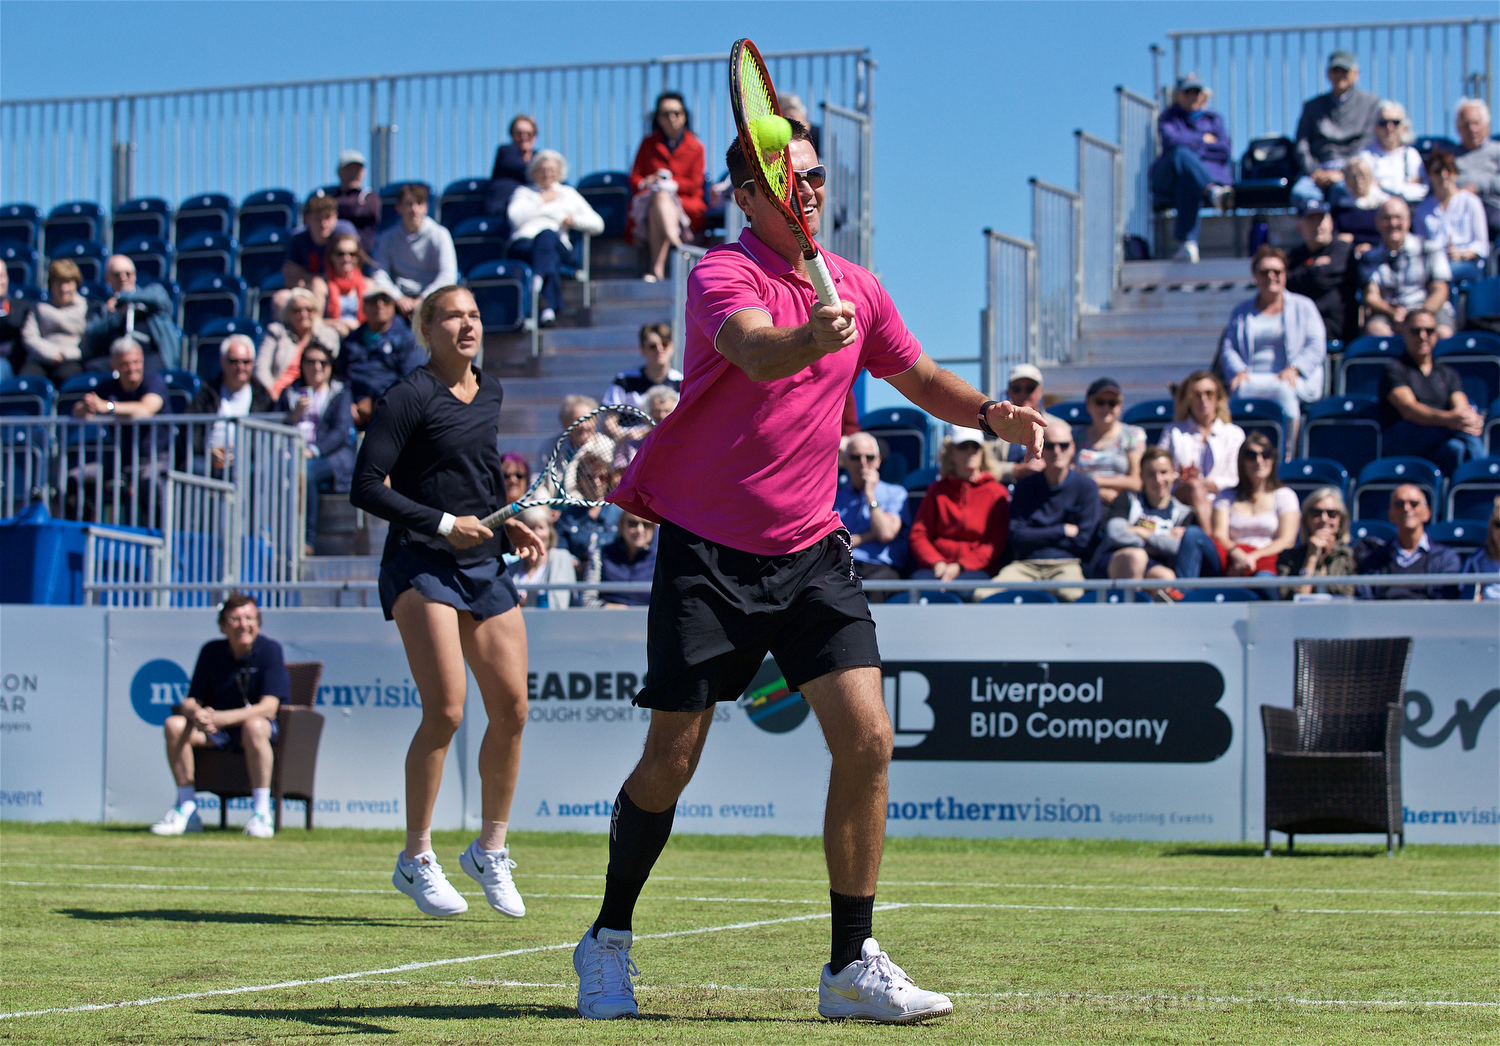 LIVERPOOL, ENGLAND - Friday, June 21, 2019: Robert Kendrick (USA) during Day Two of the Liverpool International Tennis Tournament 2019 at the Liverpool Cricket Club. (Pic by David Rawcliffe/Propaganda)